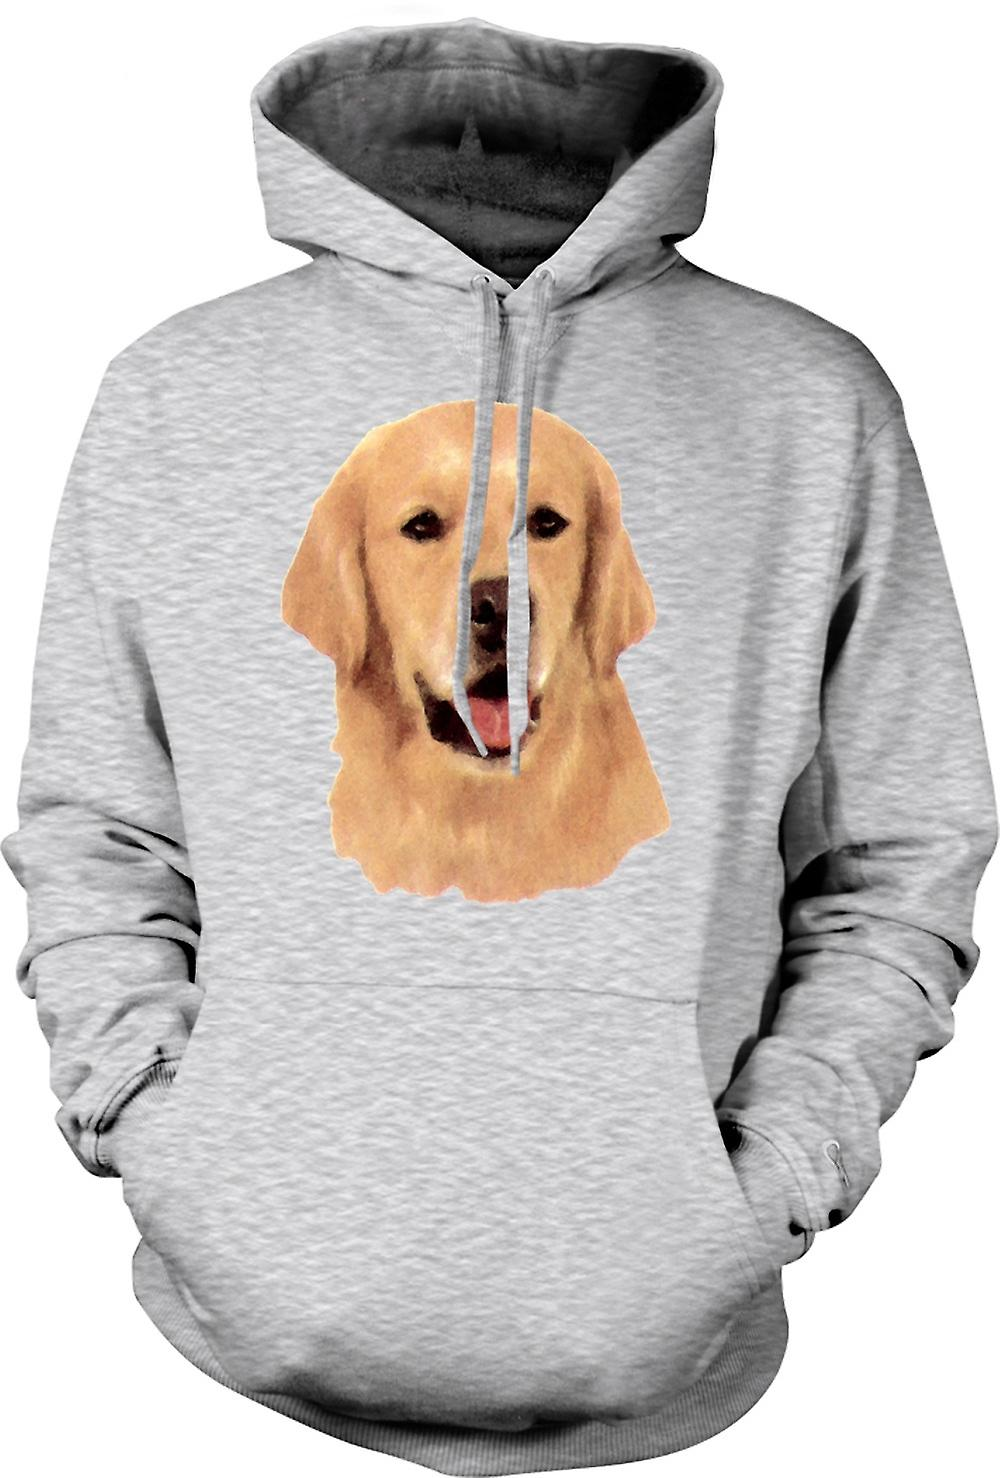 Mens Hoodie - Golden Retreiver - Pet Dog